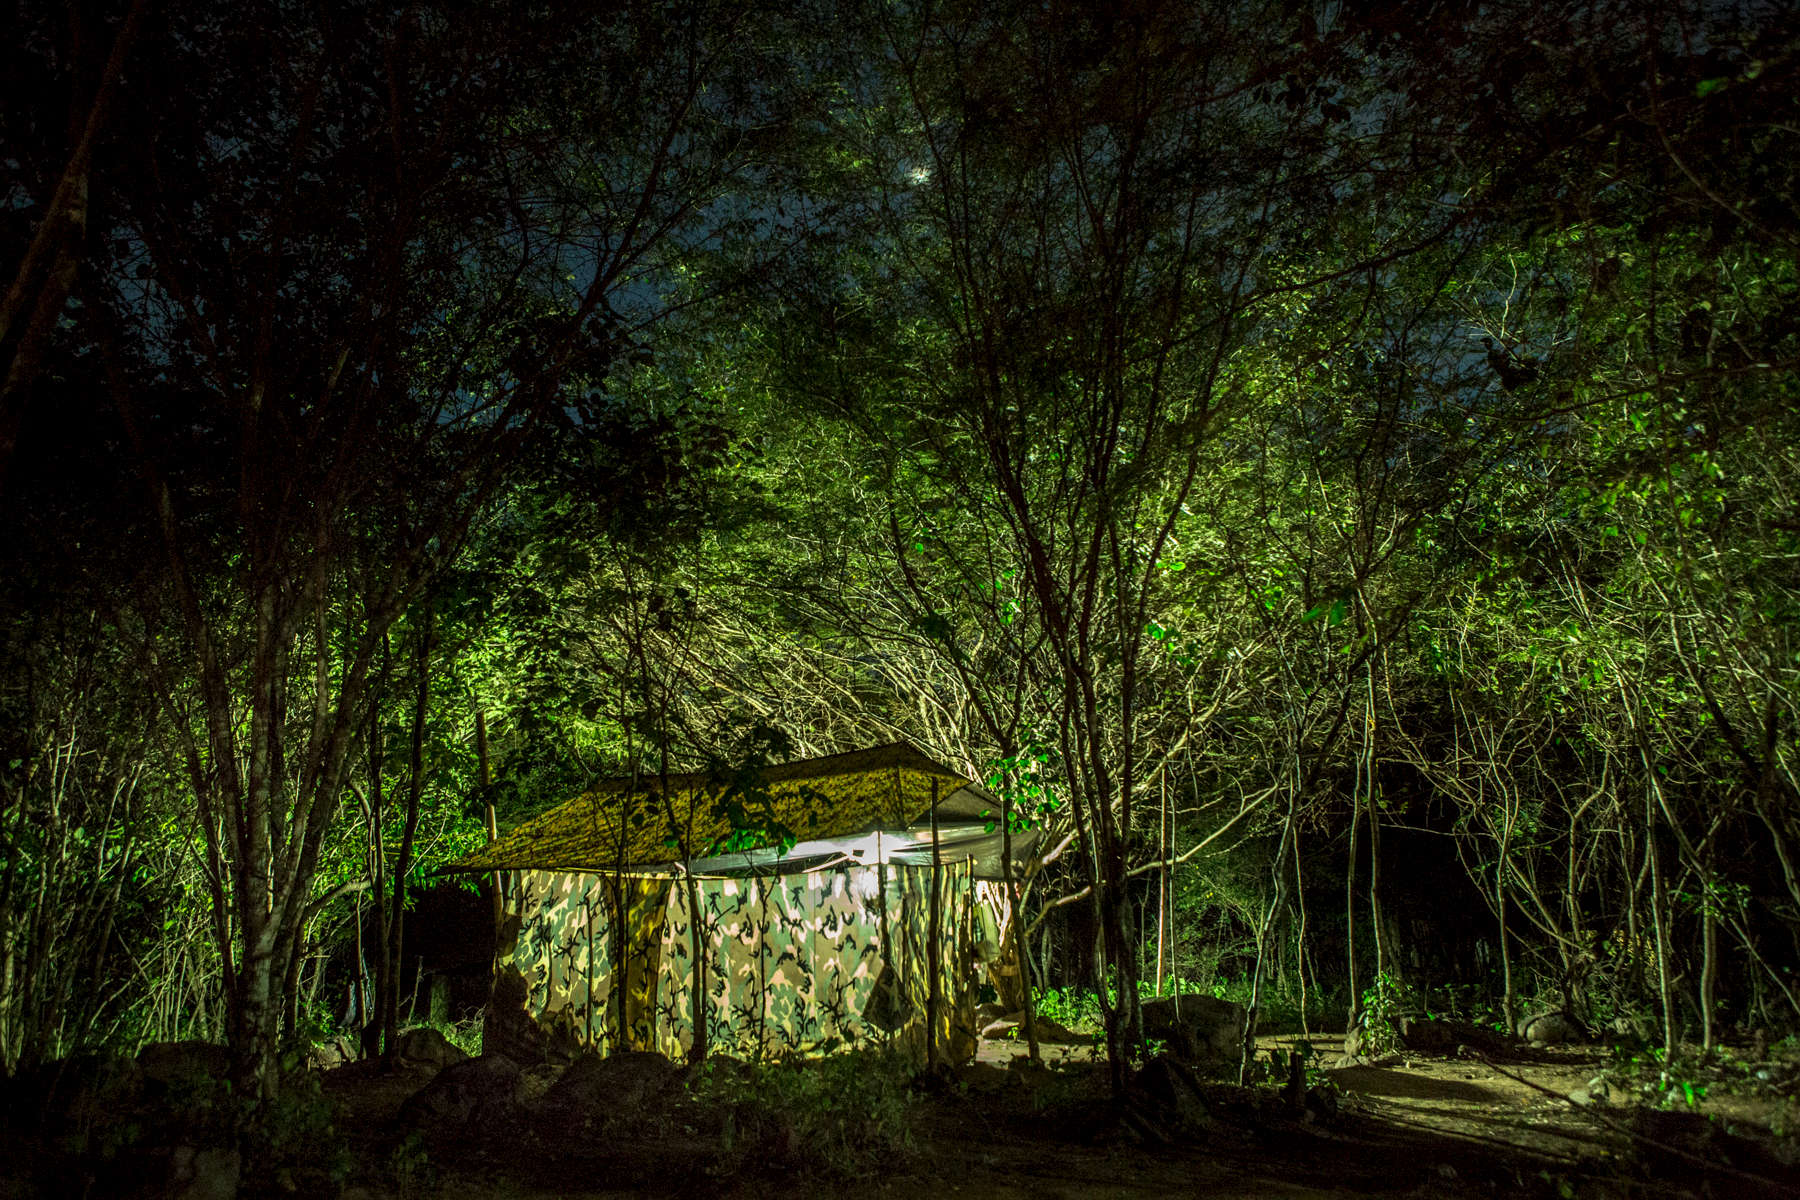 December 12, 2016. A tent in the camp of the 19th front of FARC illuminates its surrounding in the mountains on the border of Venezuela and Colombia.